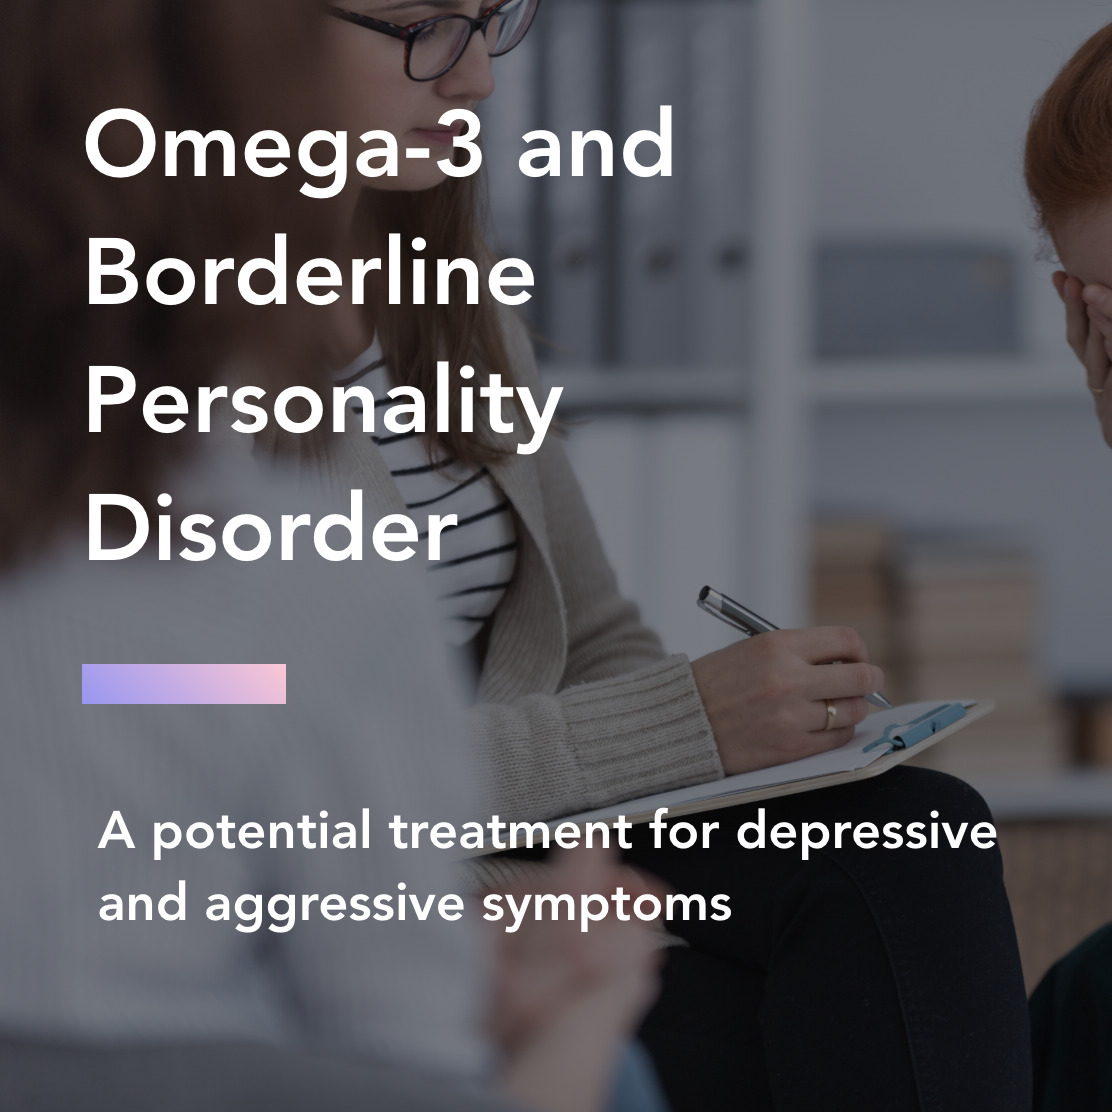 omega-3 and borderline personality disorder title